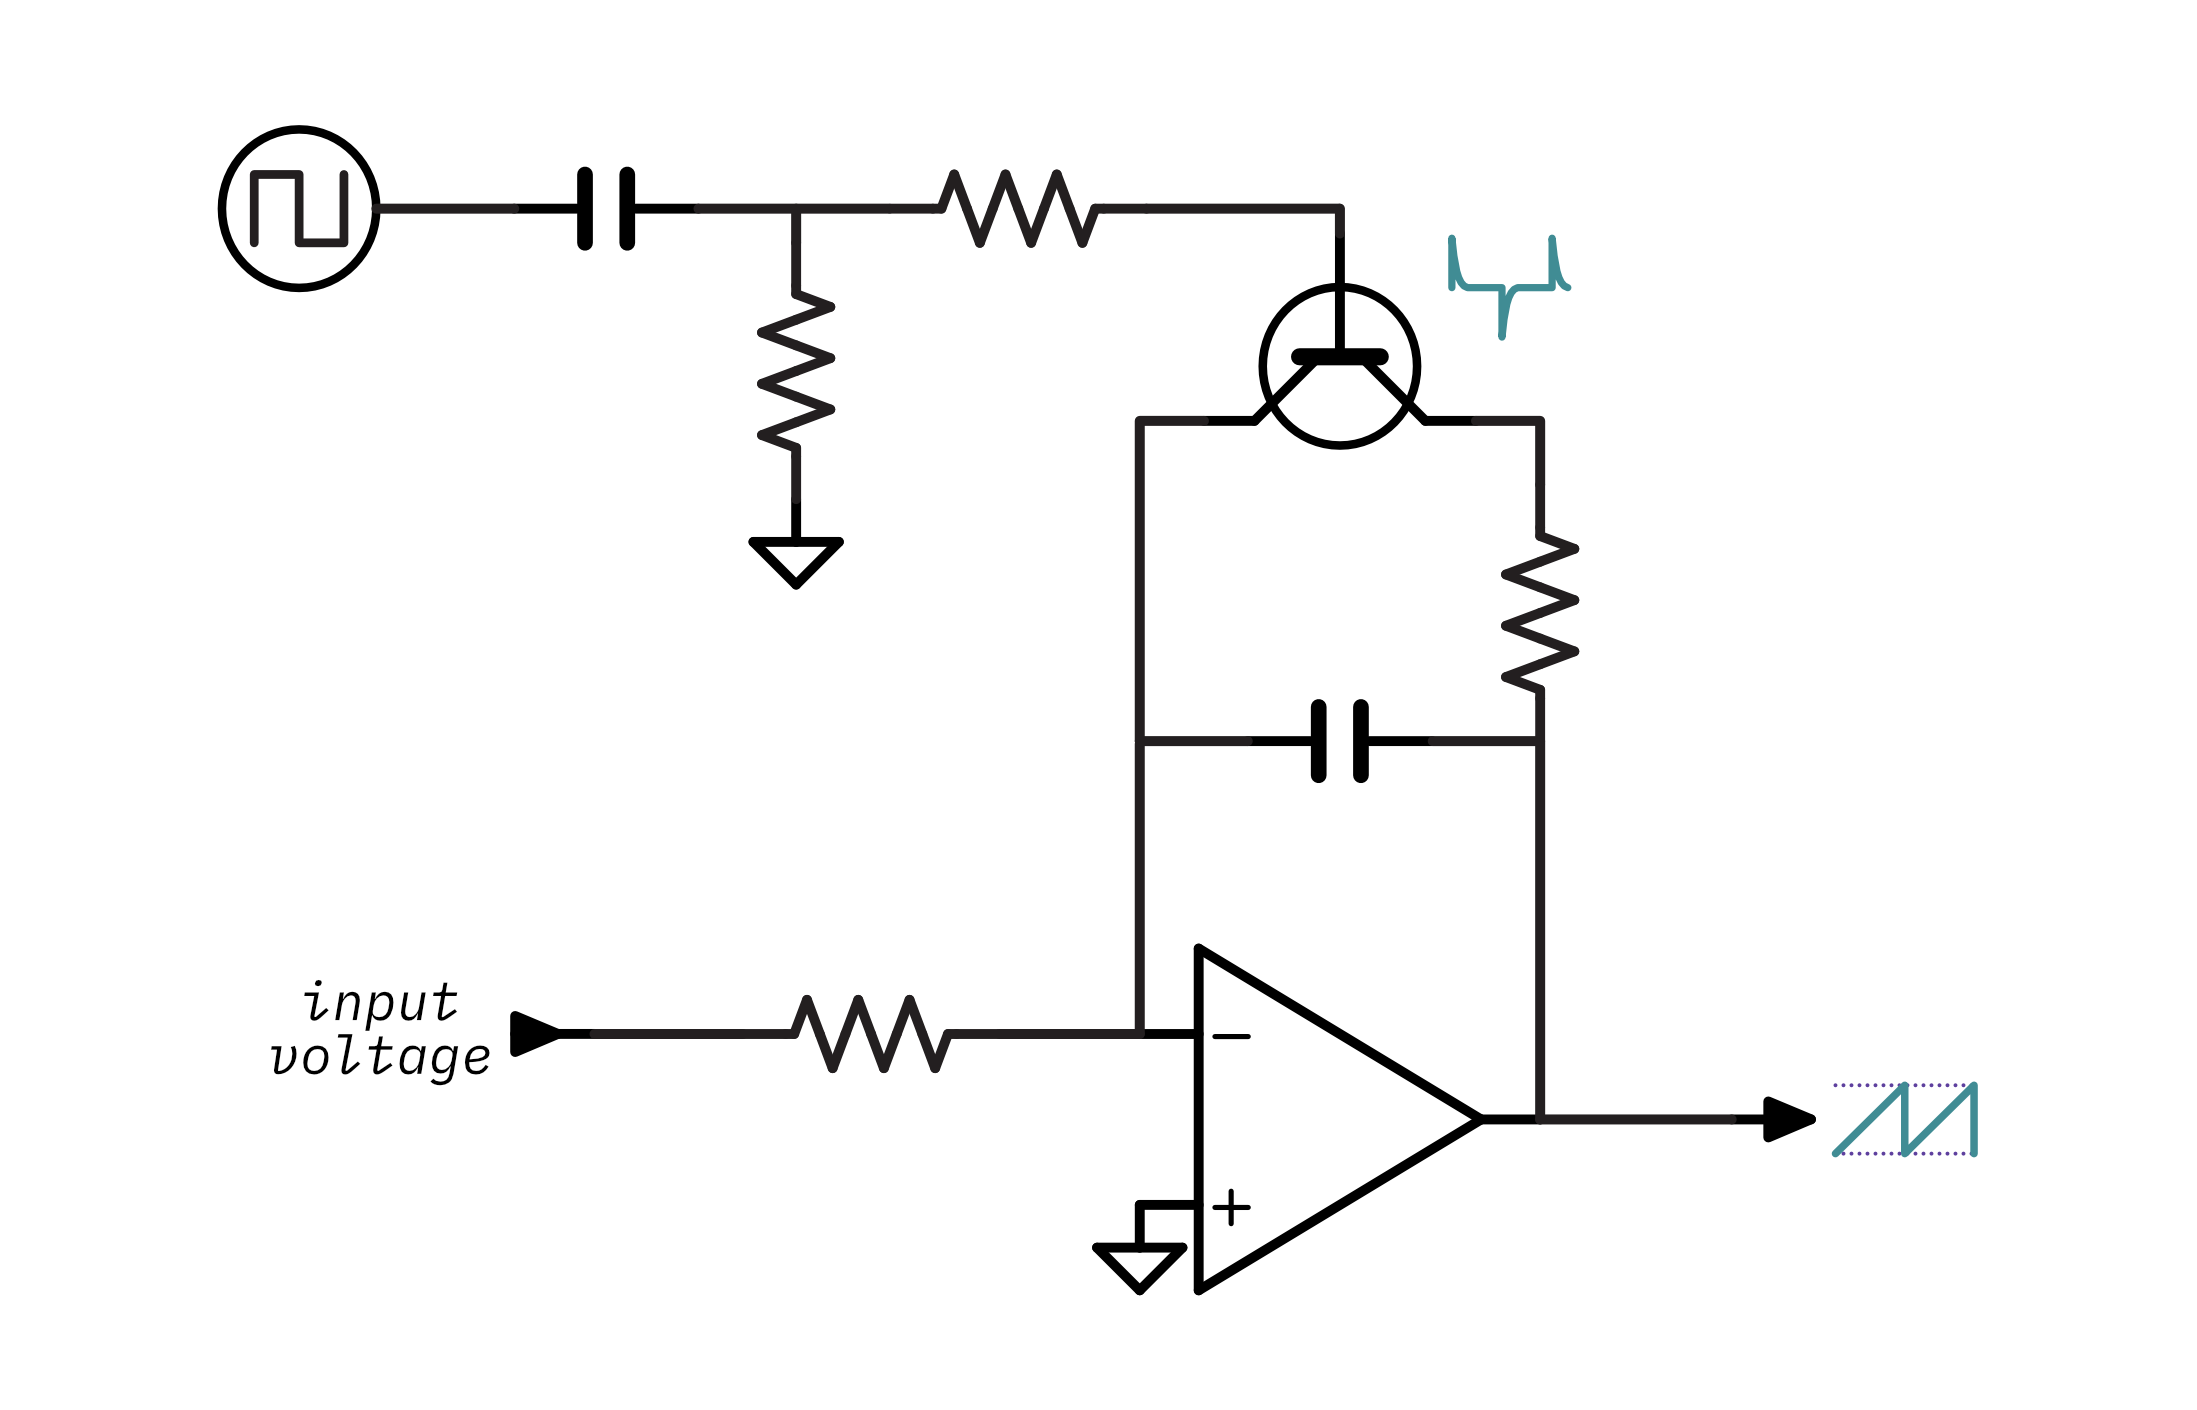 Schematic of the DCO with the RC differentiator added